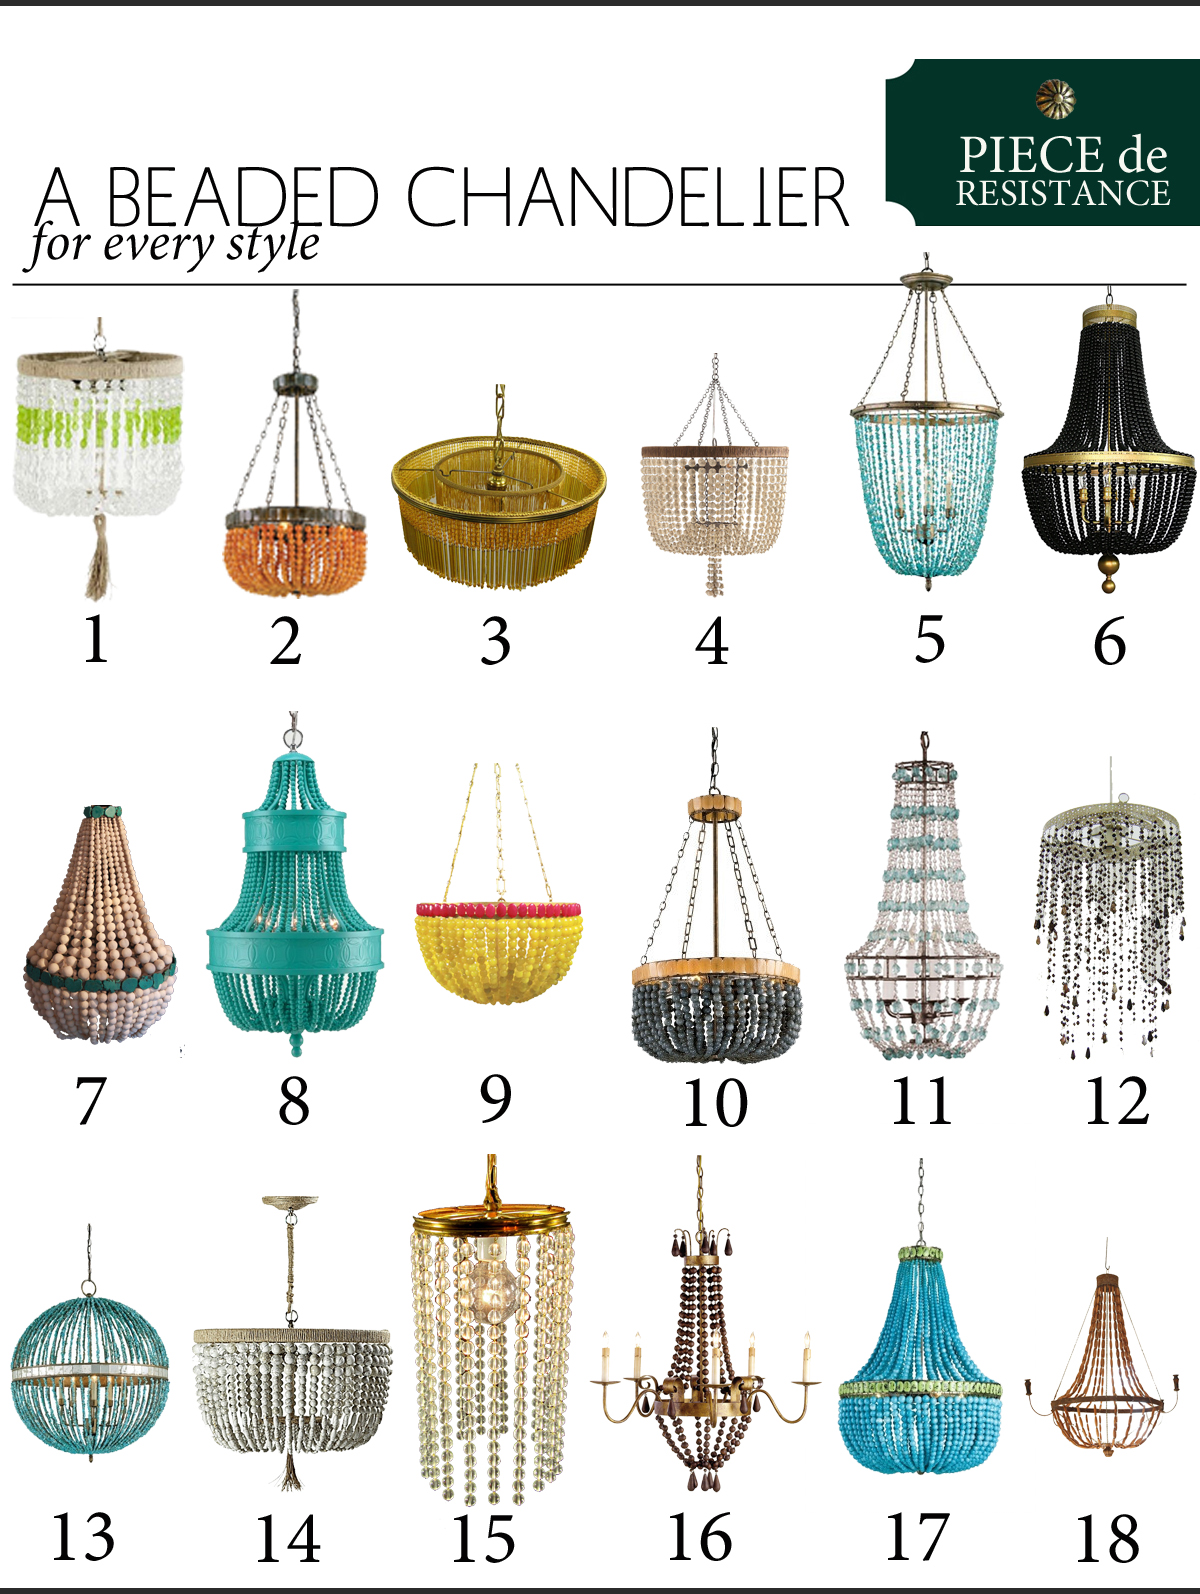 Piece de resistance a beaded chandelier the anatomy of design a beaded chandelier for every style copy arubaitofo Images